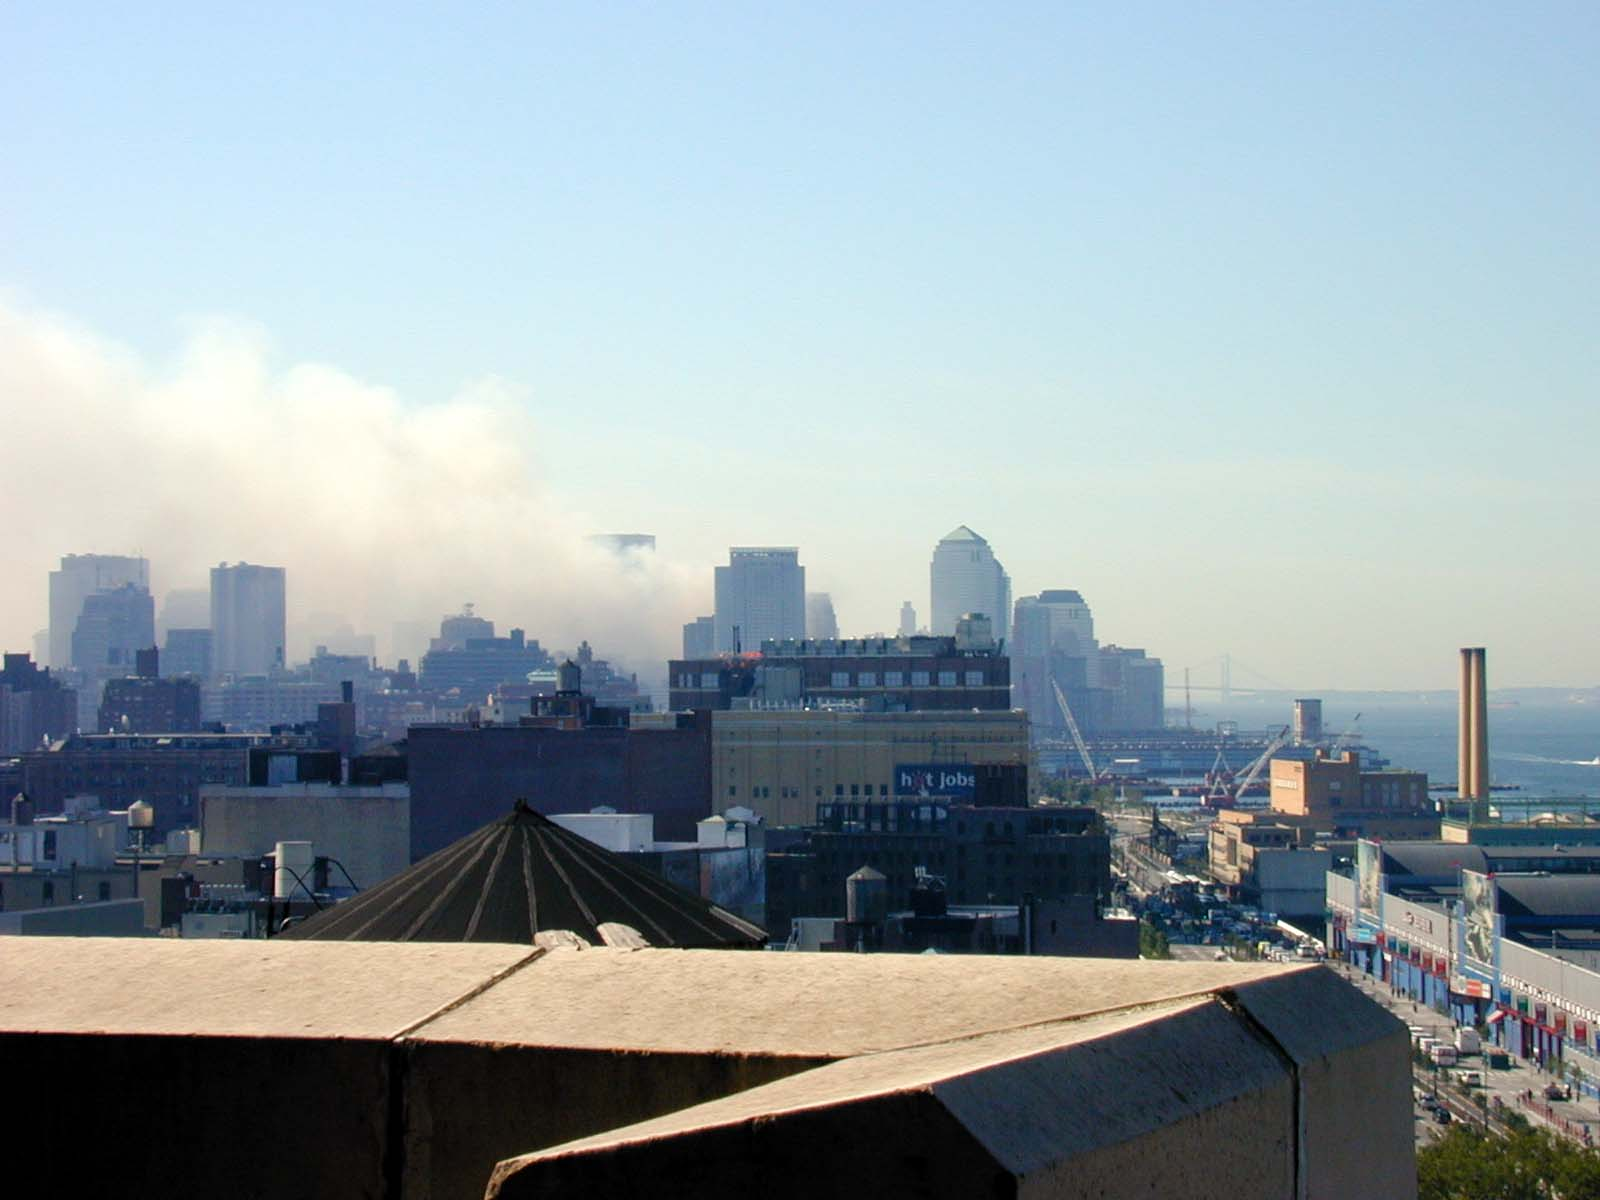 076 - Thu 10AM - downtown still smokes